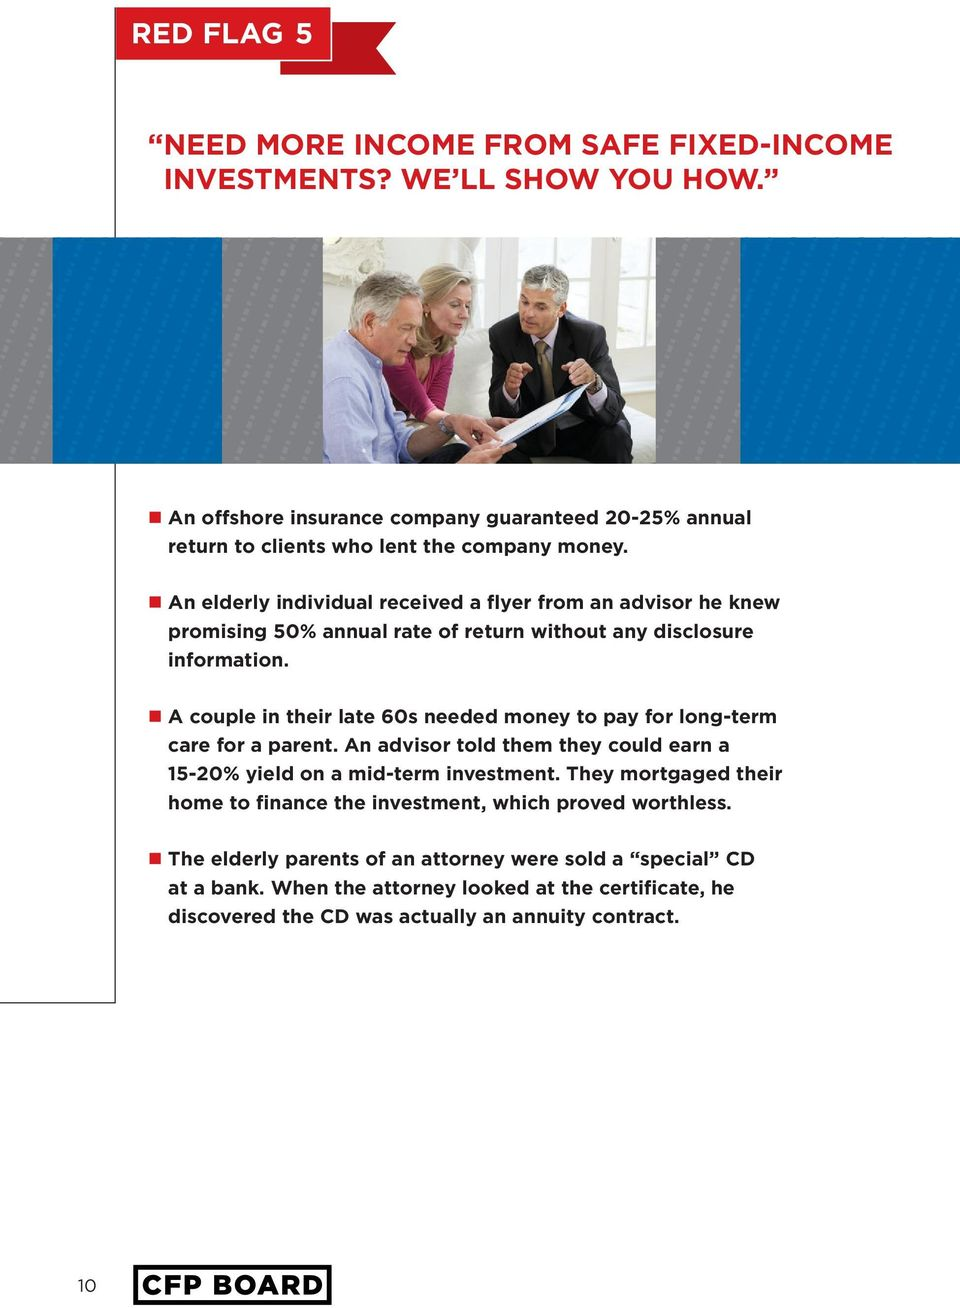 An elderly individual received a flyer from an advisor he knew promising 50% annual rate of return without any disclosure information.